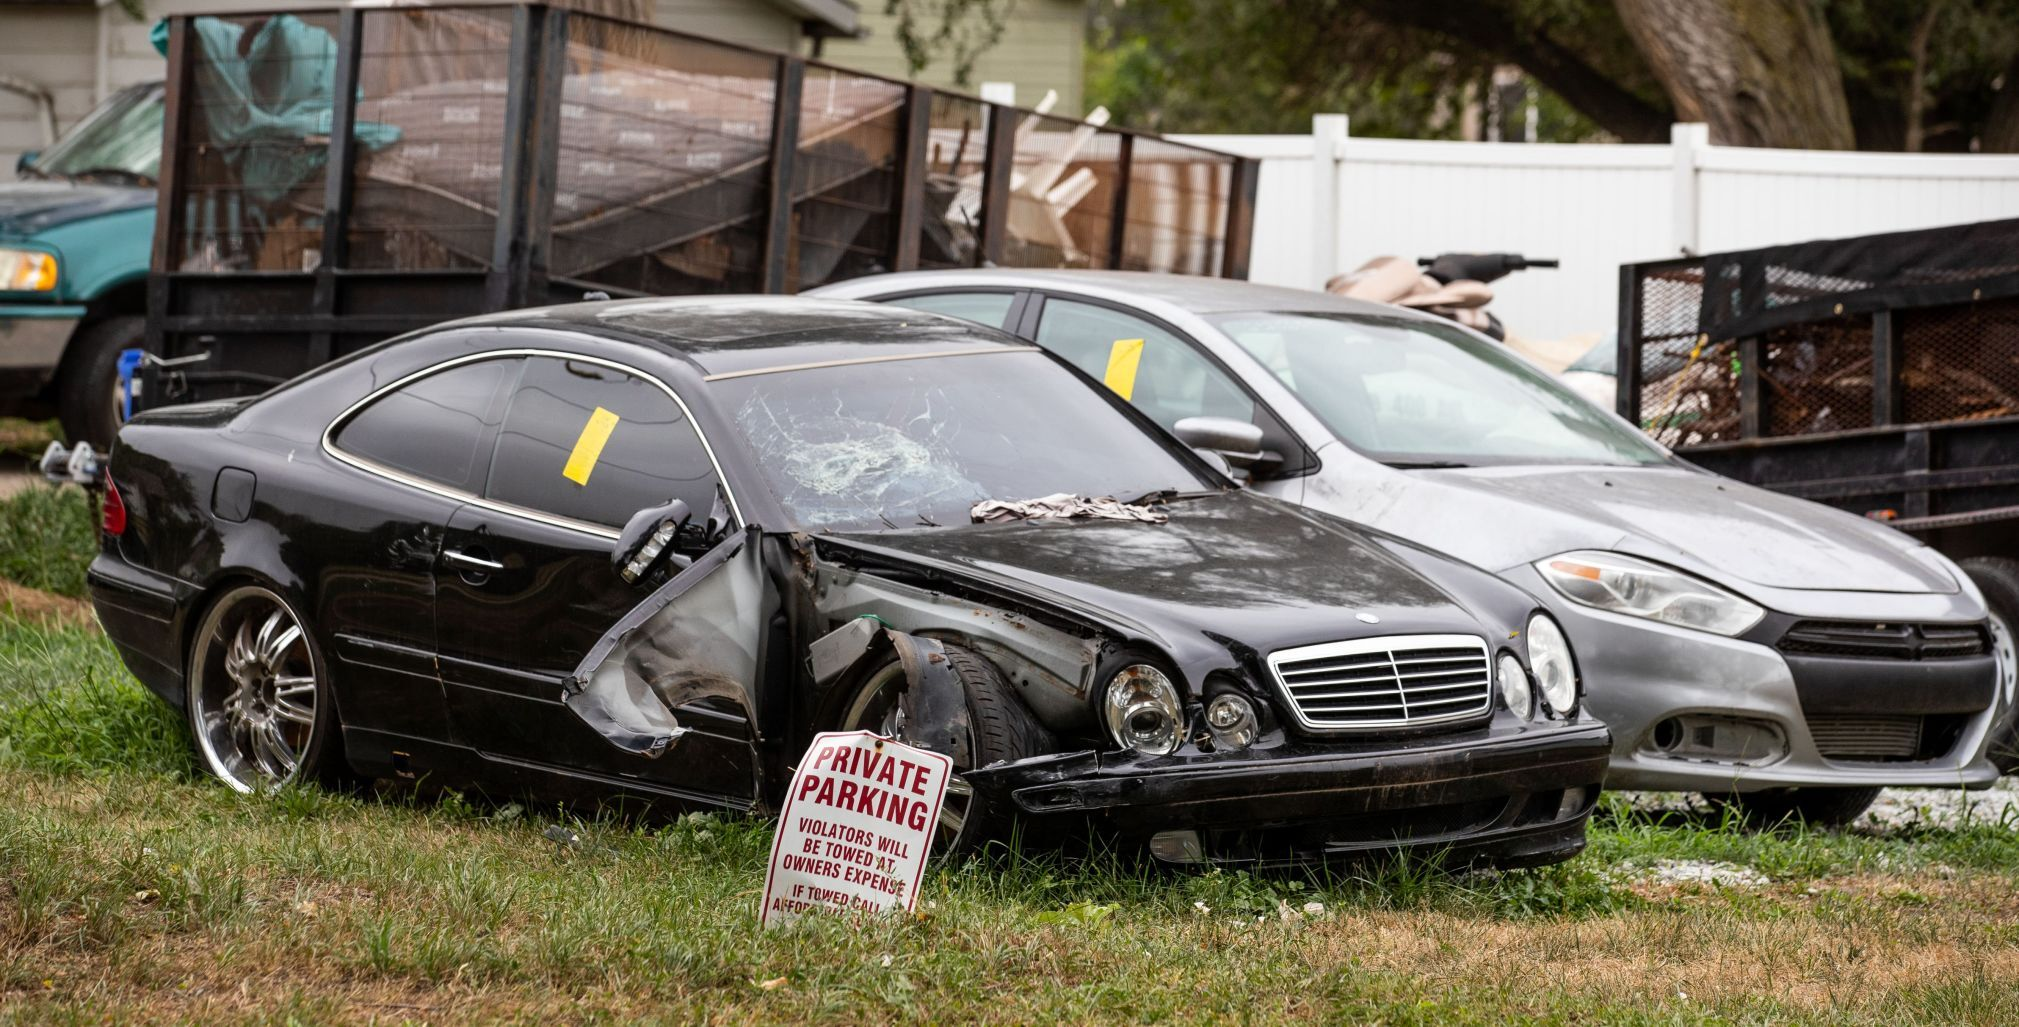 Abandoned Vehicles A Problem Omaha Receives More Than 4 000 Complaints A Year Crime News Omaha Com